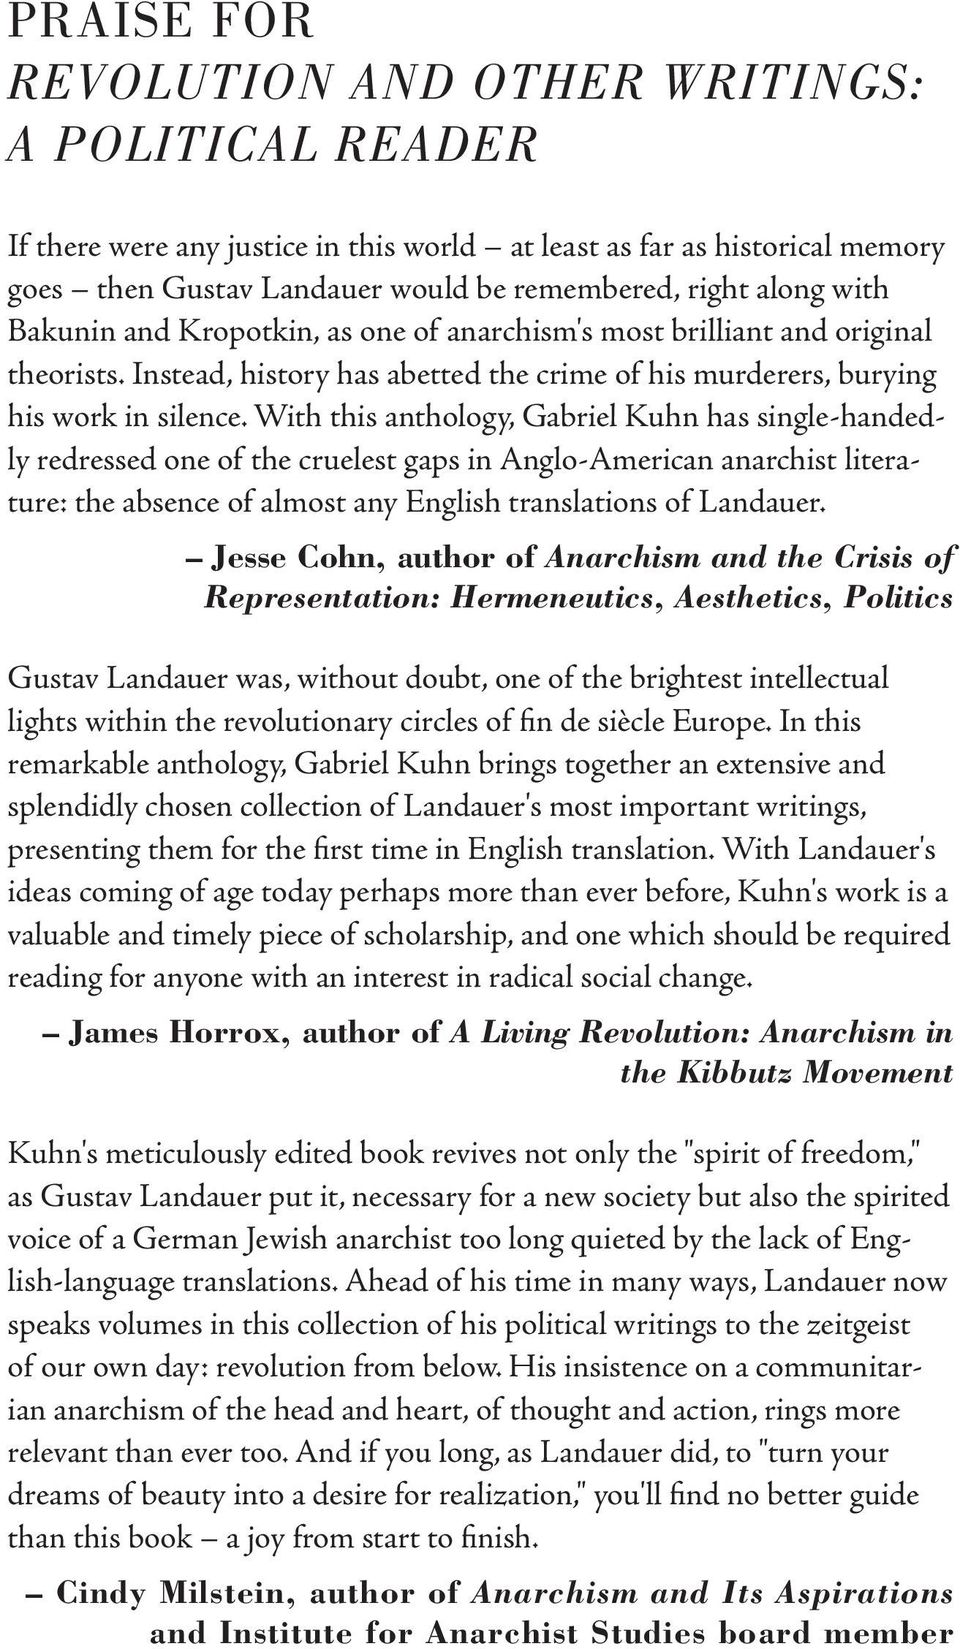 With this anthology, Gabriel Kuhn has single-handedly redressed one of the cruelest gaps in Anglo-American anarchist literature: the absence of almost any English translations of Landauer.